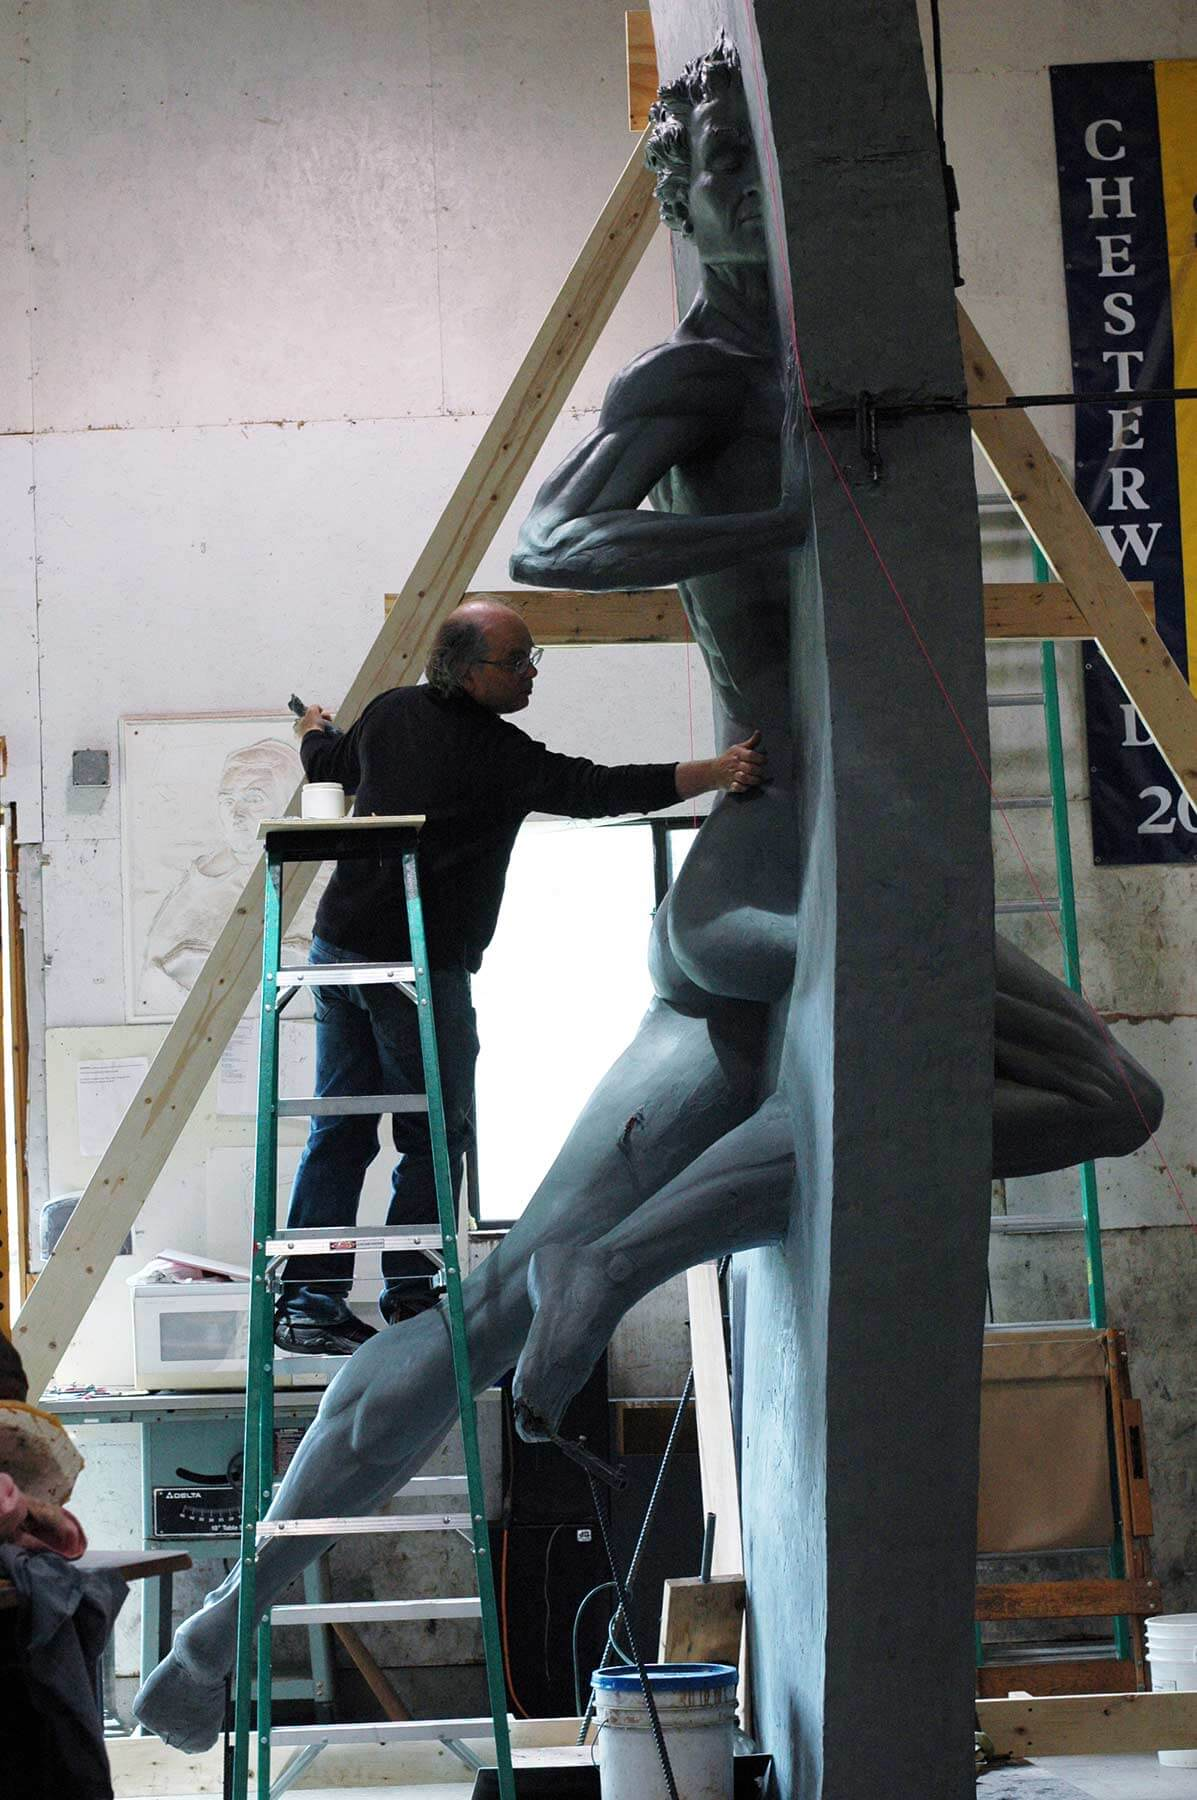 Andrew sculpting the clay model of the monumental Other Side of Eden 2015